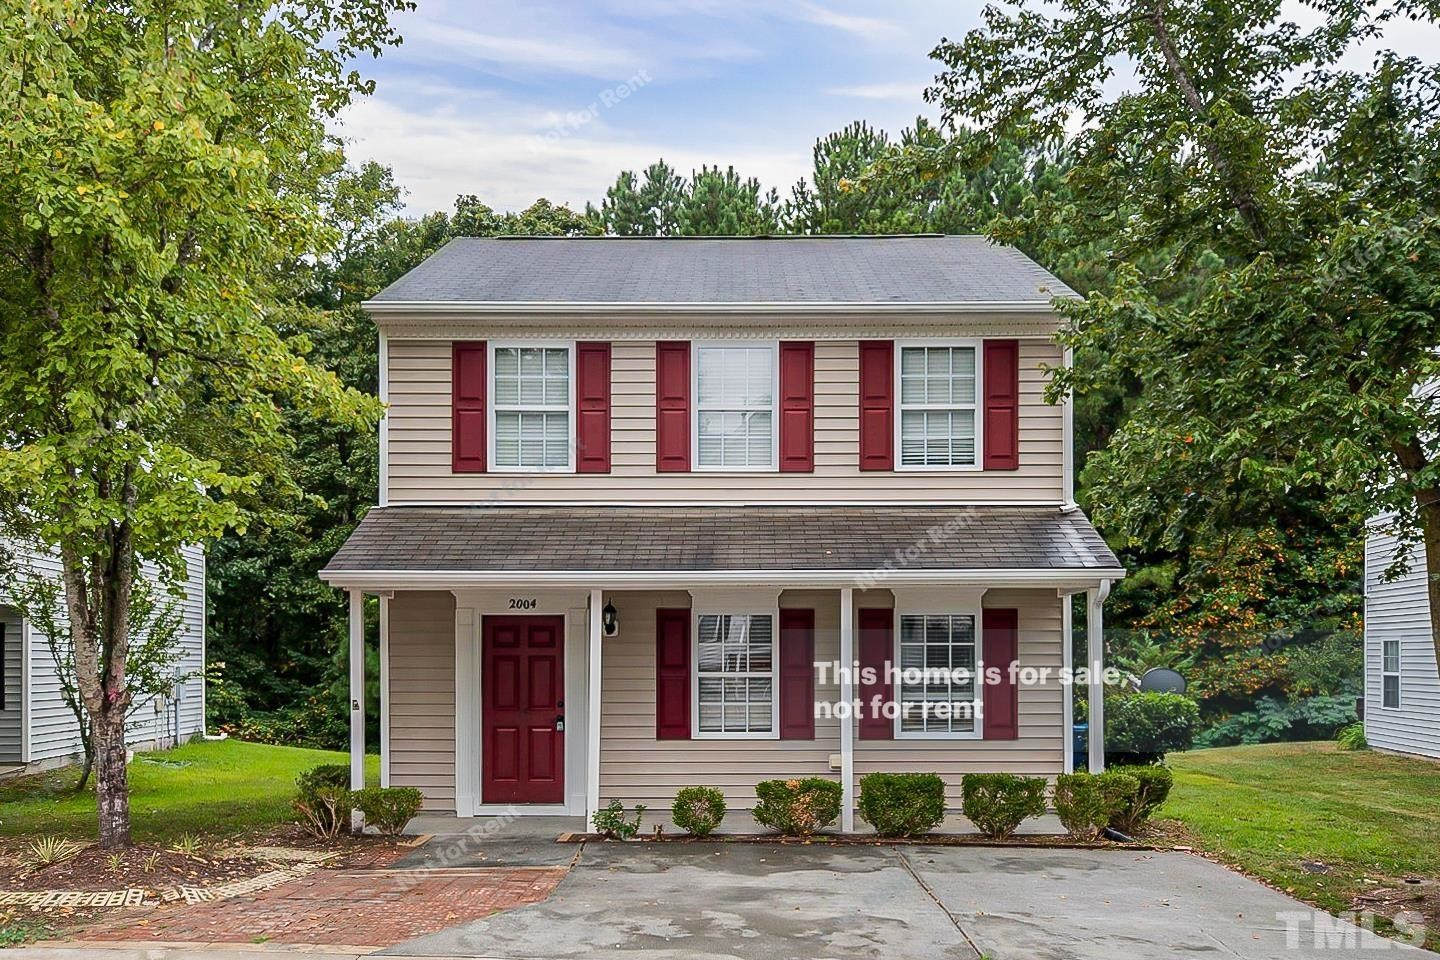 3-Bedroom House In The Meadows At Landon Farms